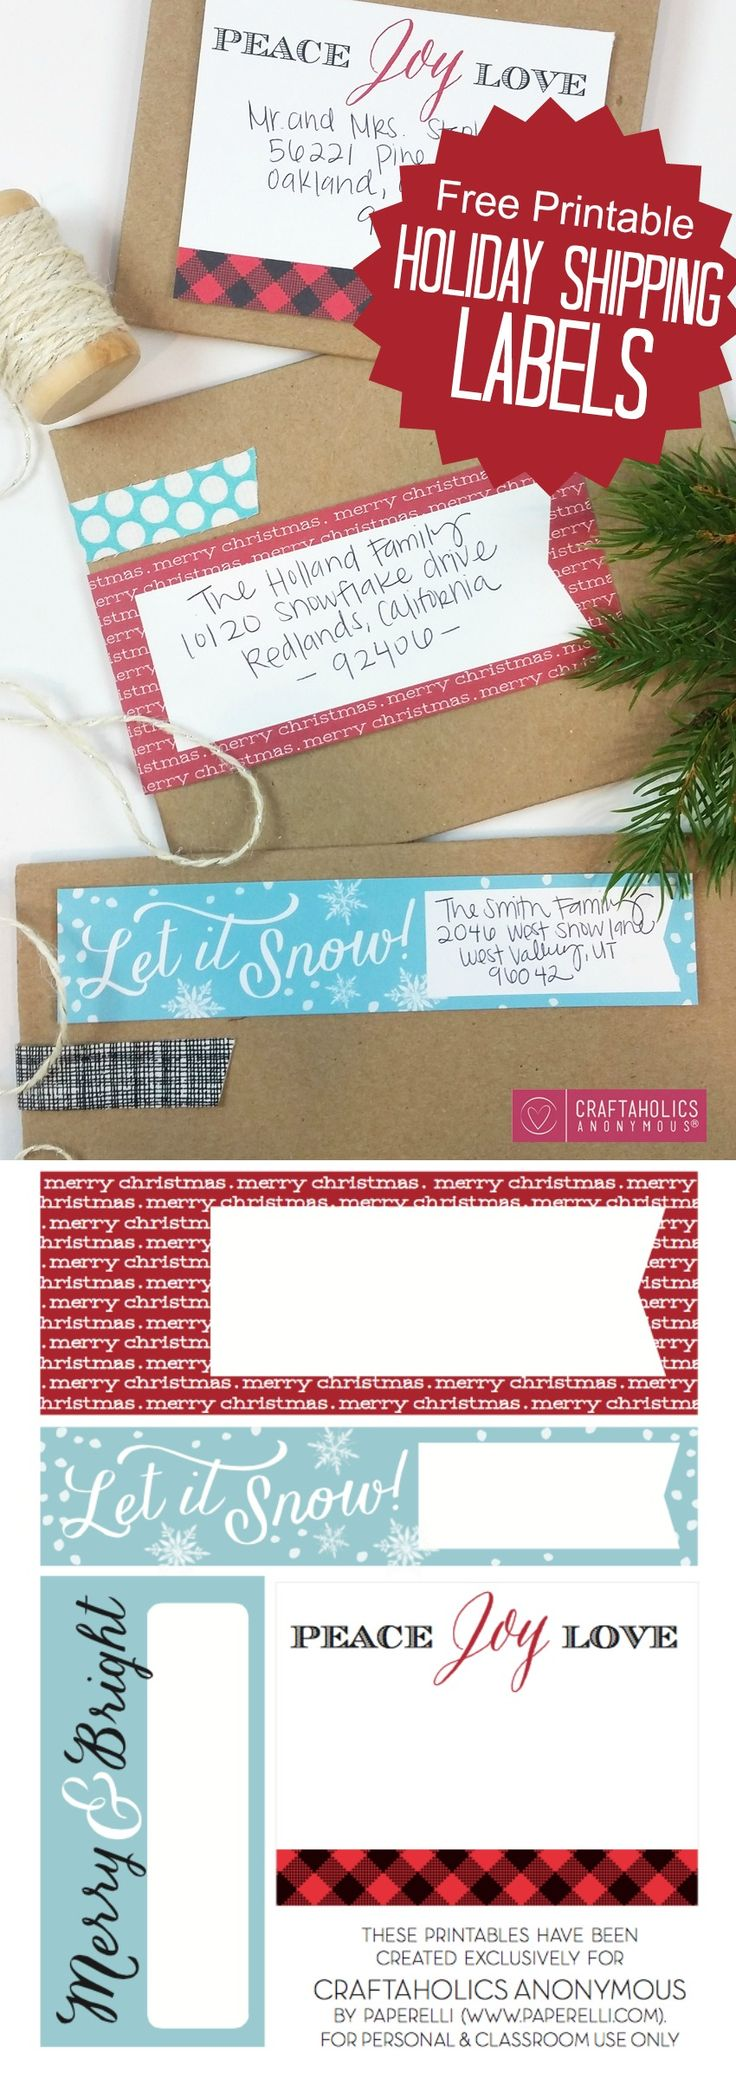 Free Printable holiday shipping labels. These are perfect for Christmas cards!! And gifts too.